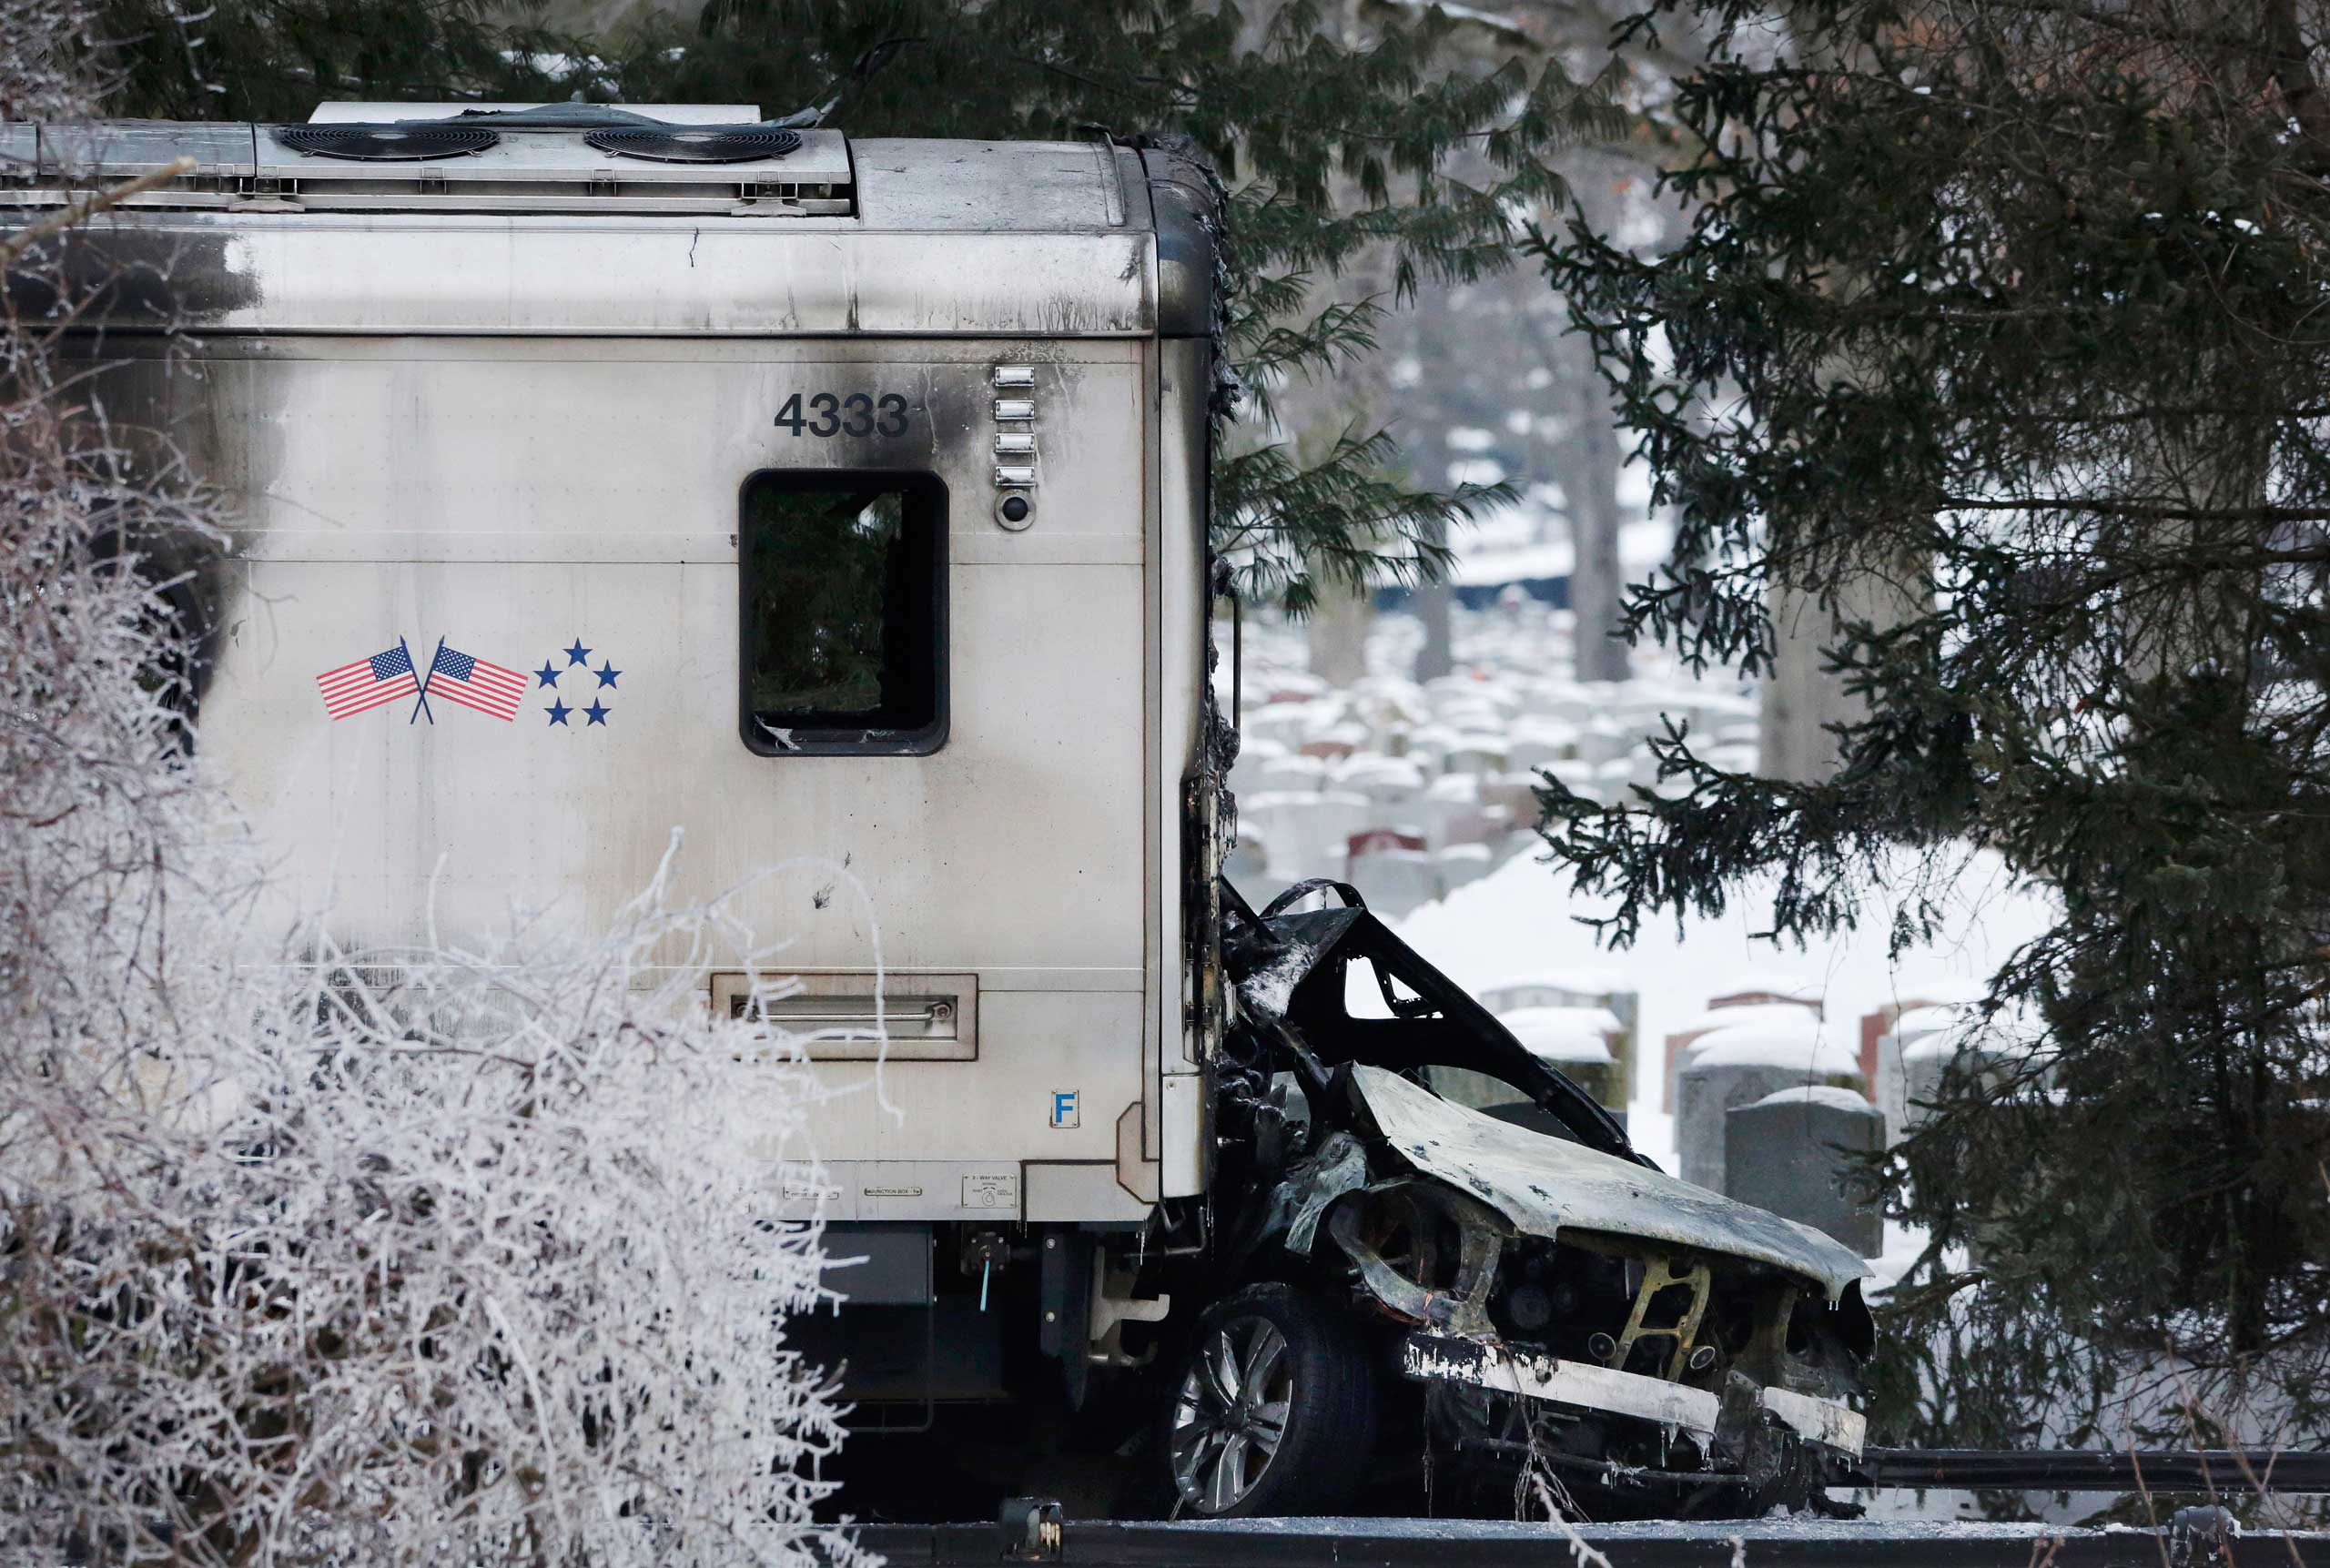 Feb. 4, 2015. A sports utility vehicle remains crushed and burned at the front of a Metro-North train, in Valhalla, N.Y. The commuter train slammed into the SUV stuck on the tracks, killing the driver and five train passengers.